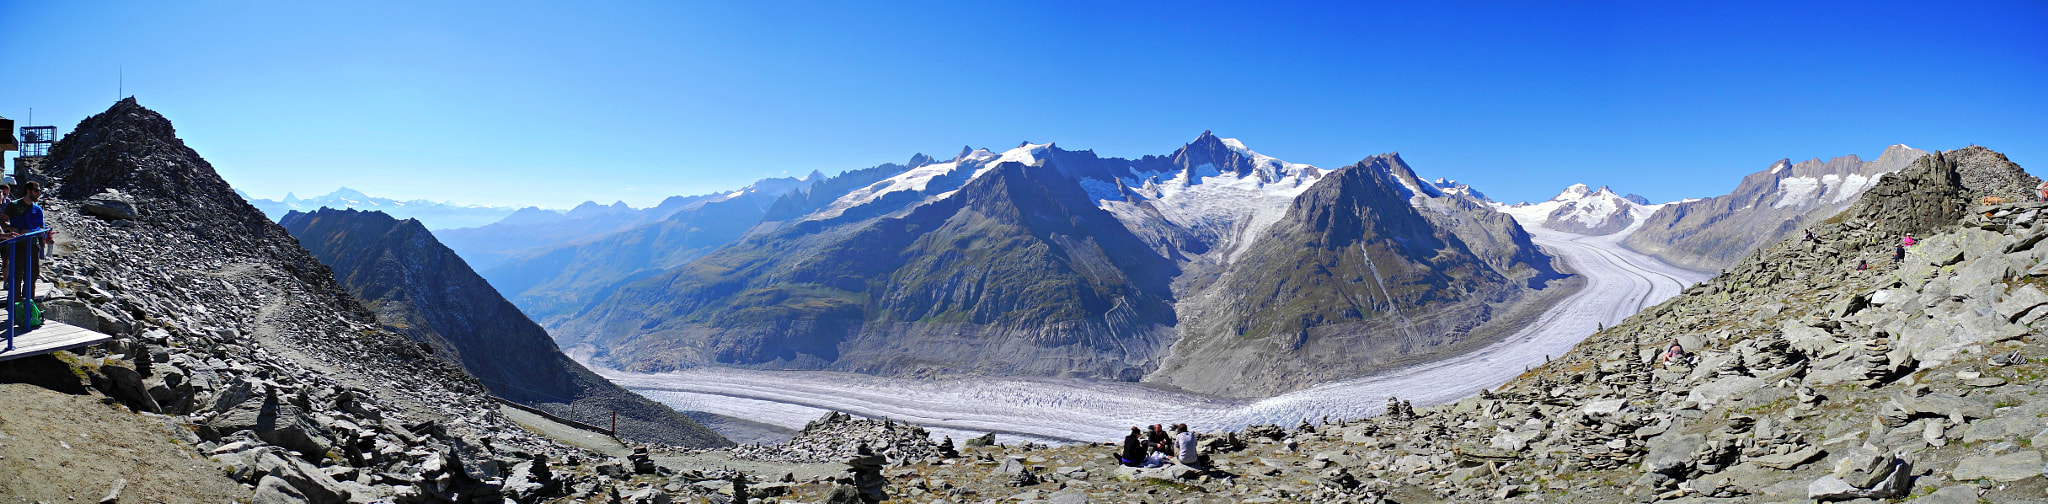 Photograph Panorama from Eggishorn by stefanocarda on 500px